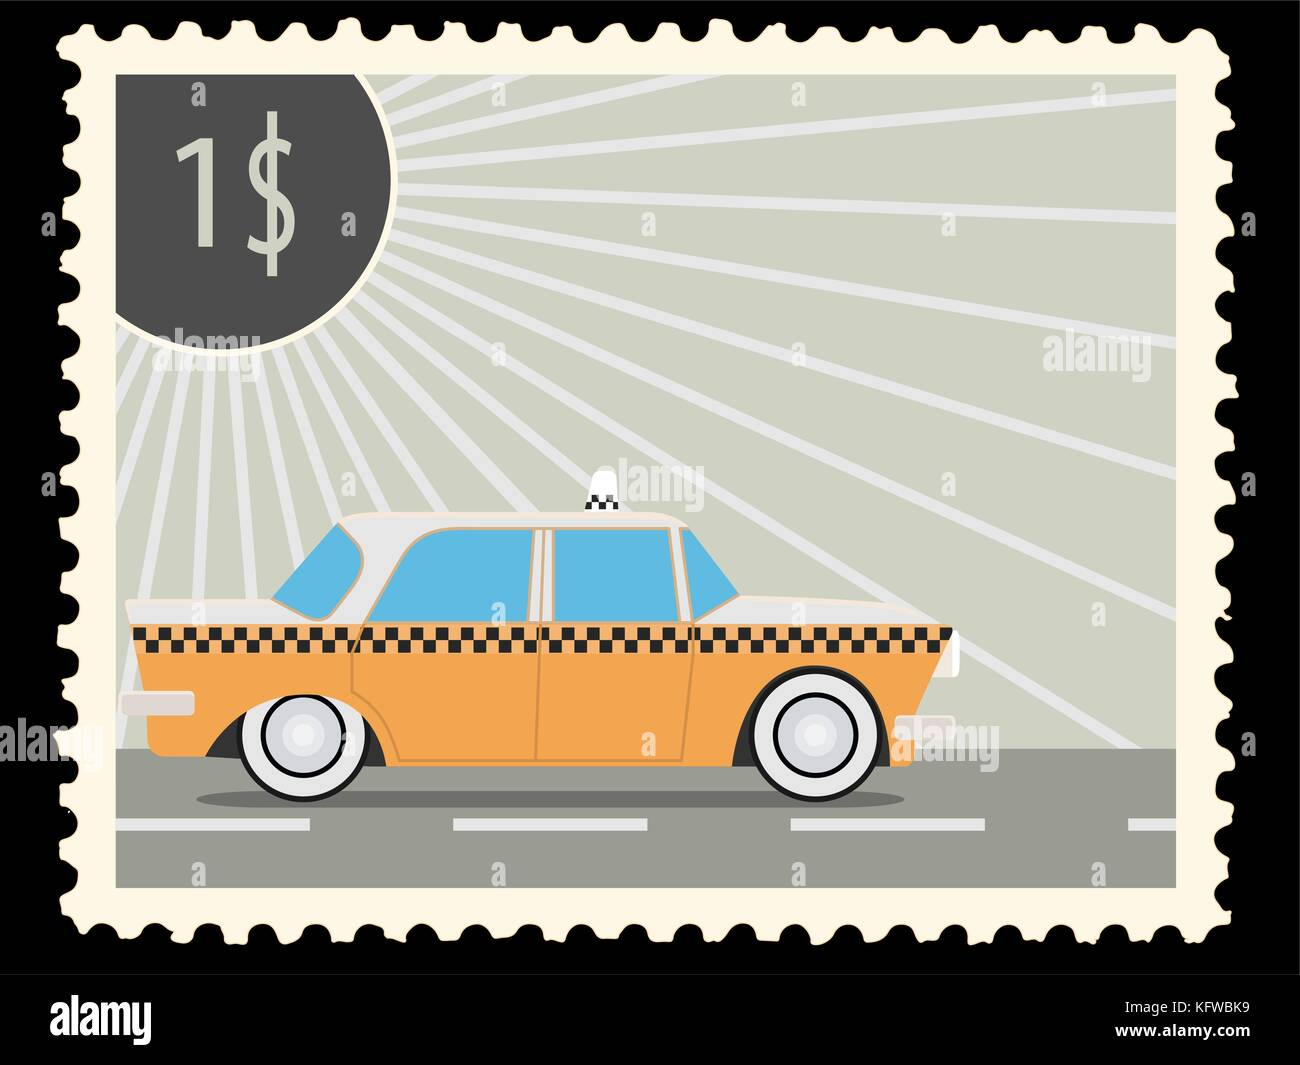 Timbre-poste avec retro voitures taxi. vector illustration Illustration de Vecteur